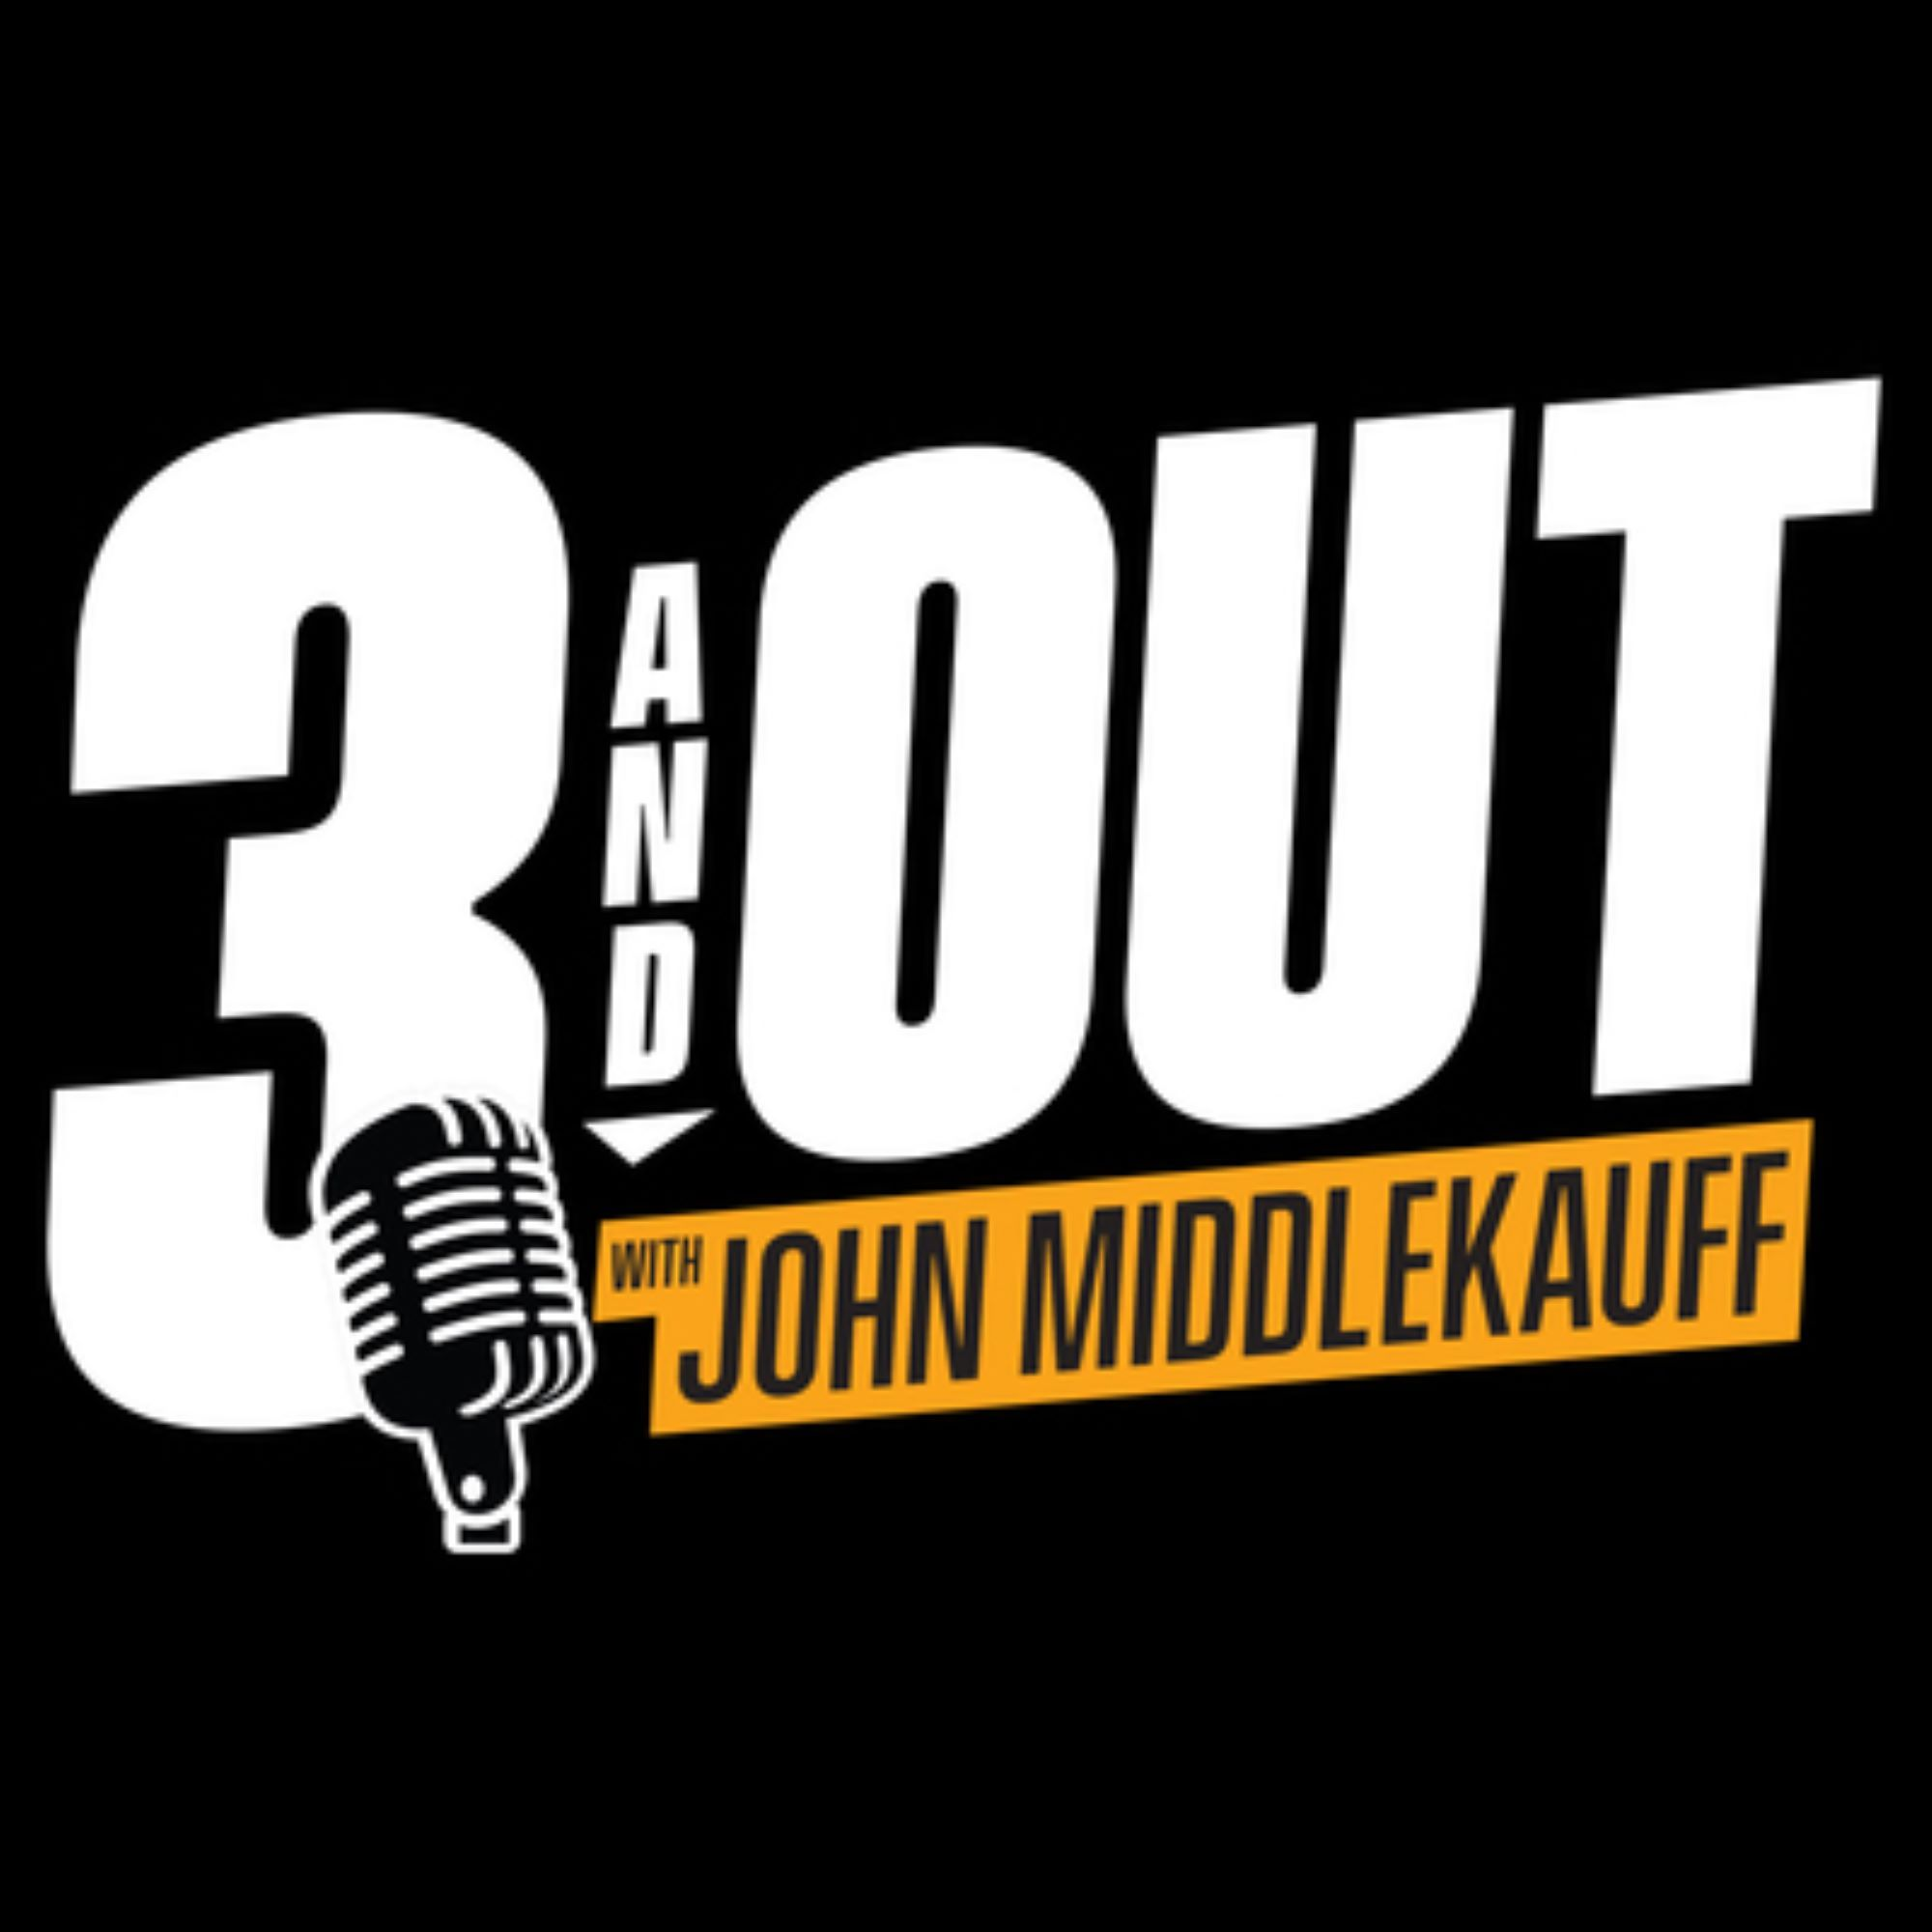 3 and Out - Super Size 4th of July Middlekauff Mailbag